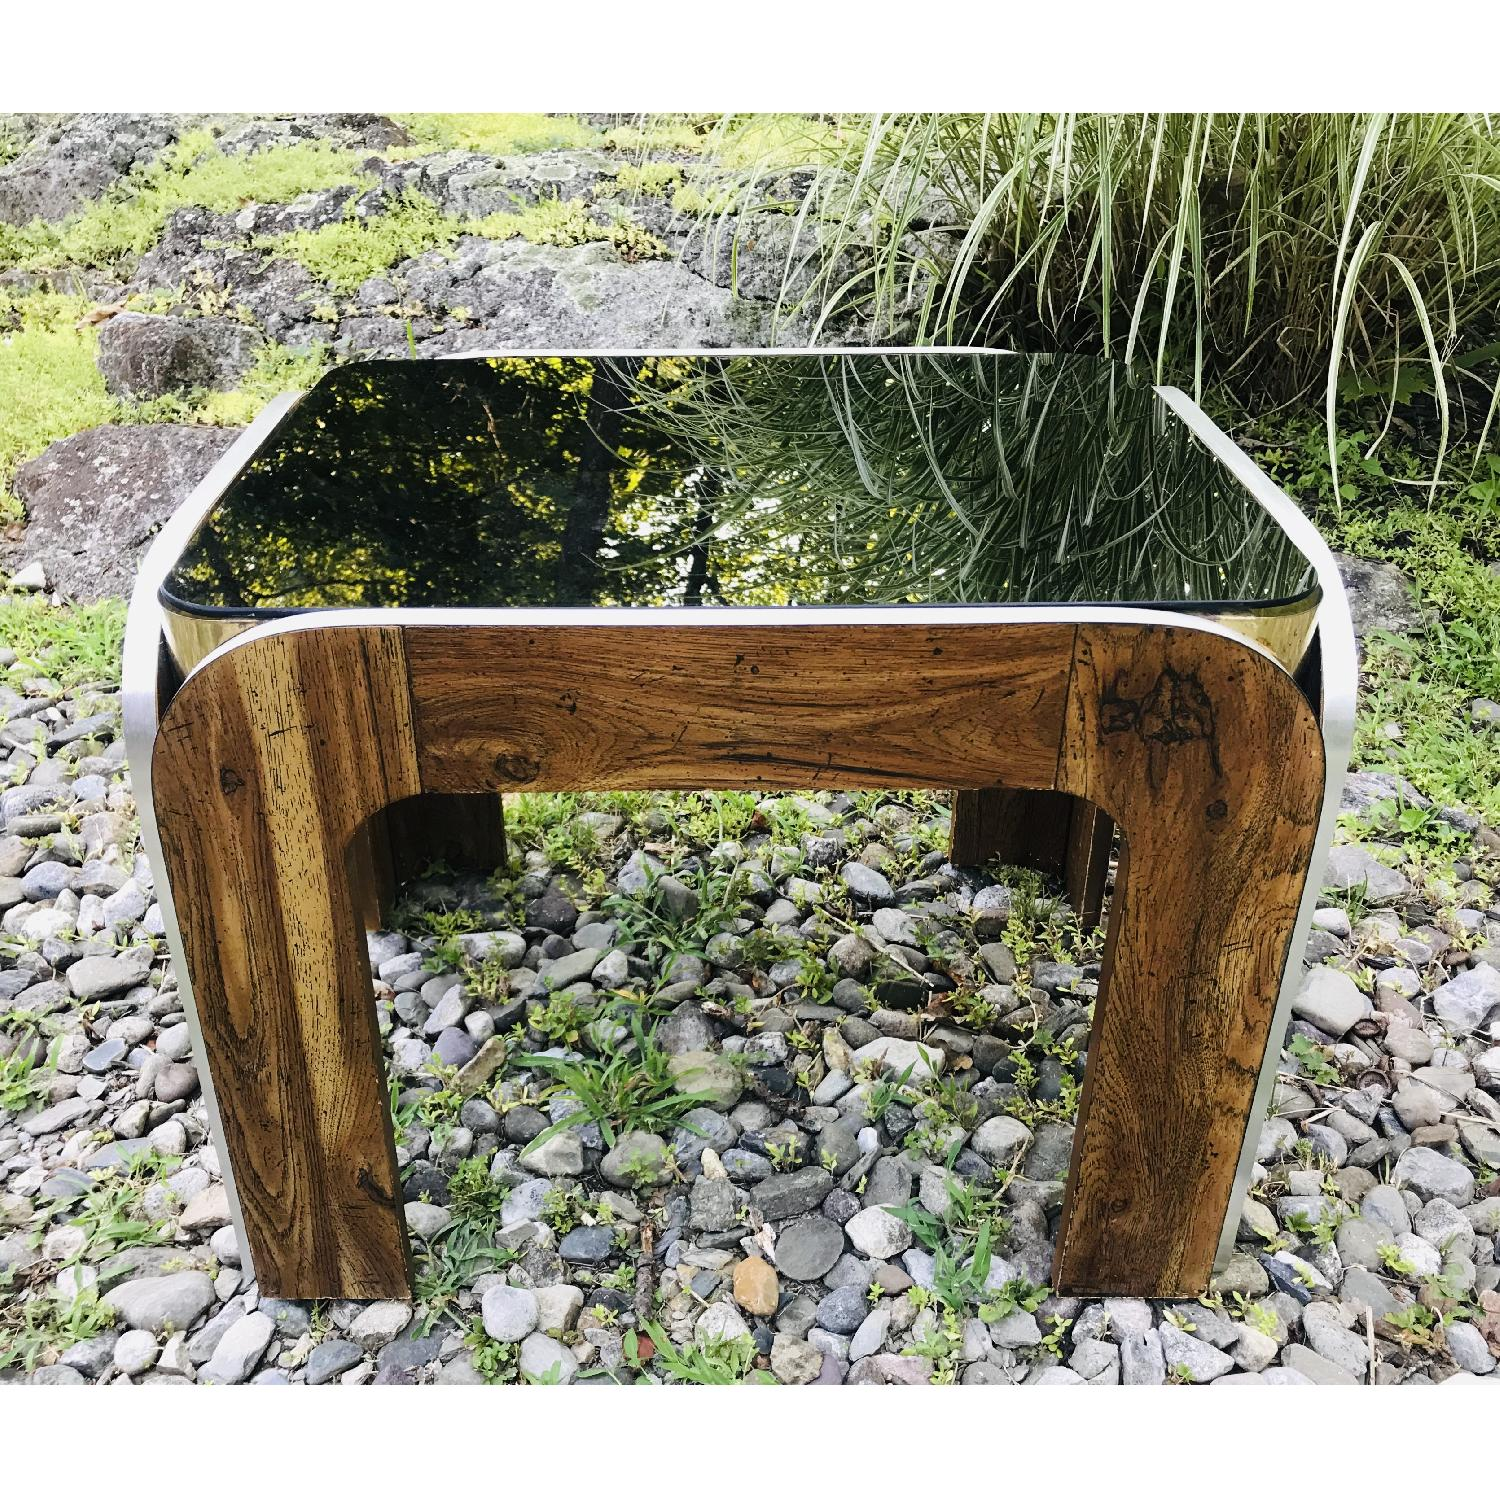 Vinitage Deco Style Coffee Table w/ Smoked Glass Top - image-1